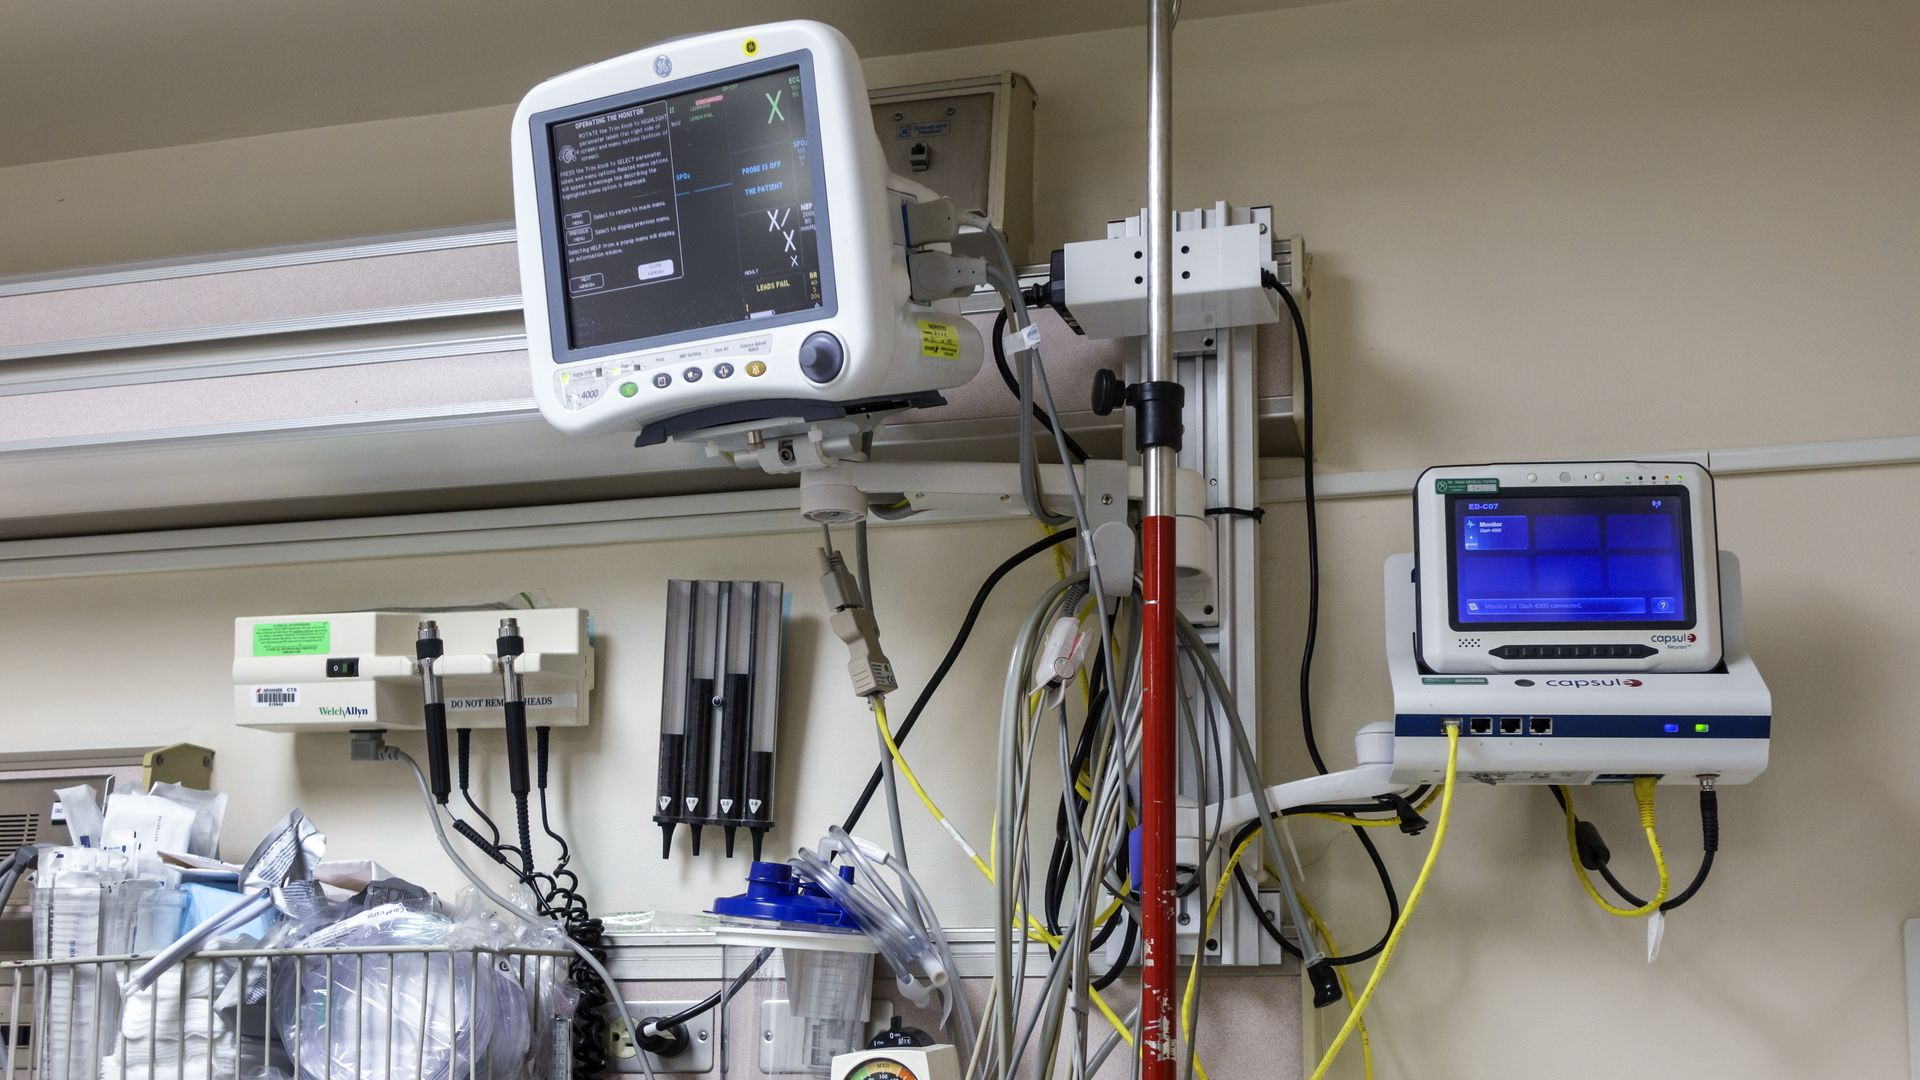 Medical equipment and monitors in a hospital emergency room.